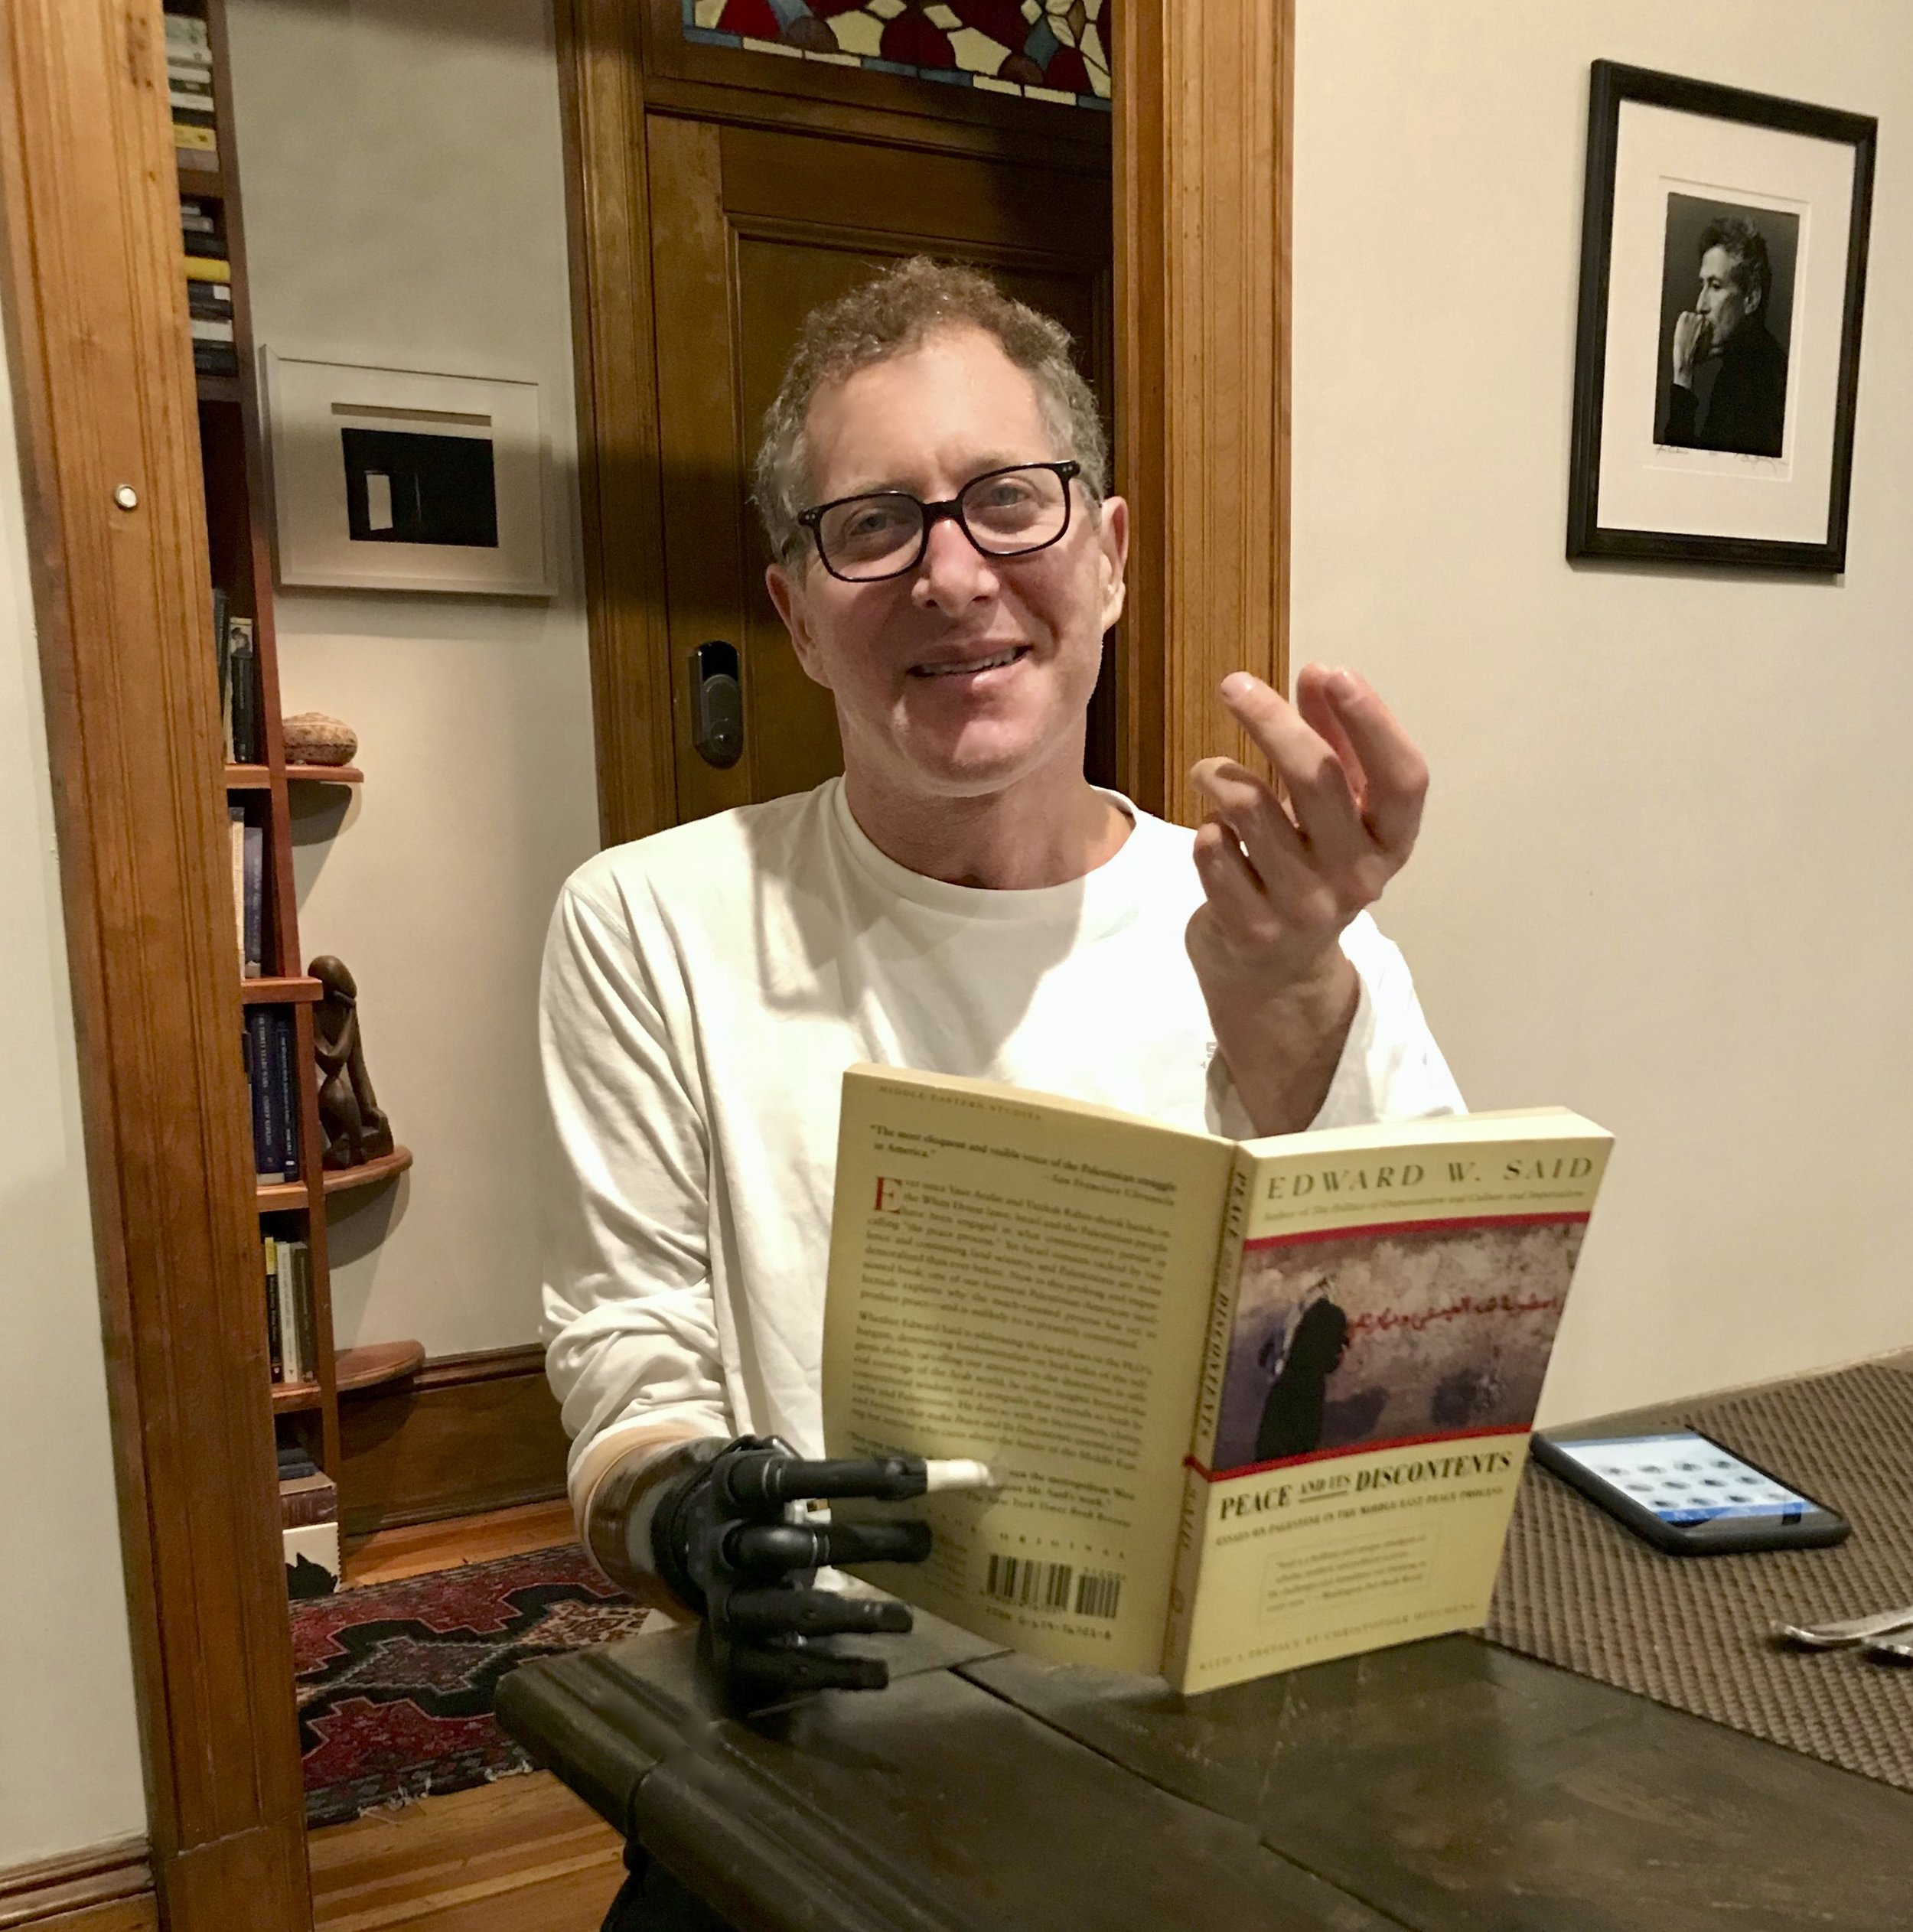 "Andrew Rubin: ""This picture portrays one of the most fulfilling experiences I have had so far: that after 15 years, I can now hold a book, while lecturing and gesticulating with my other hand."""